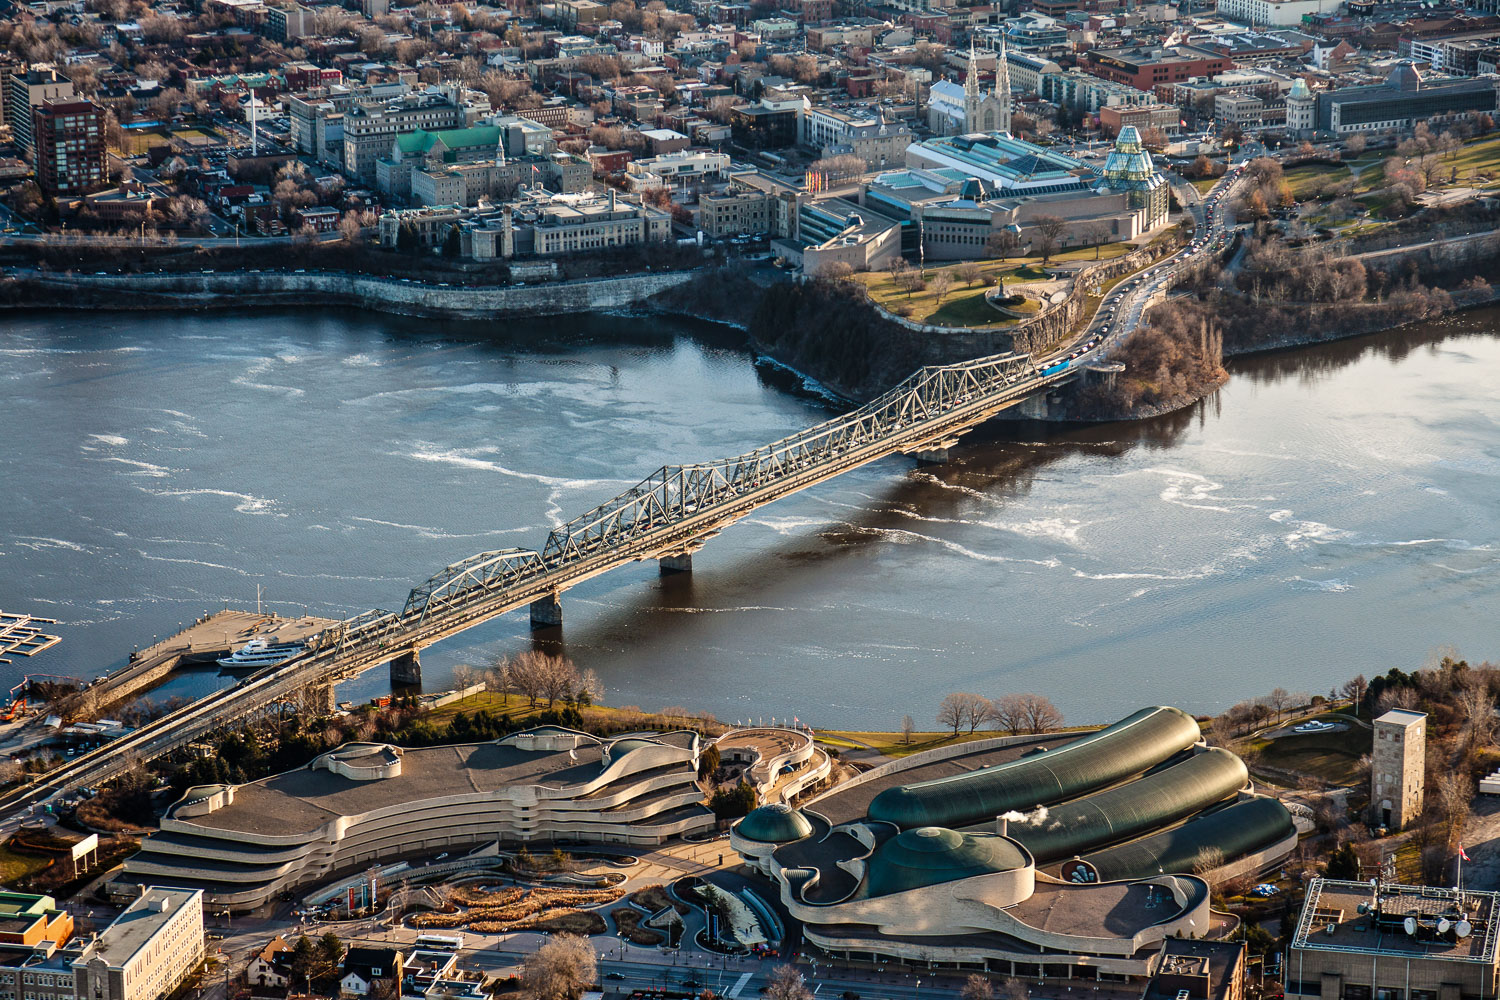 Photograph of the champlain bridge in Ottawa